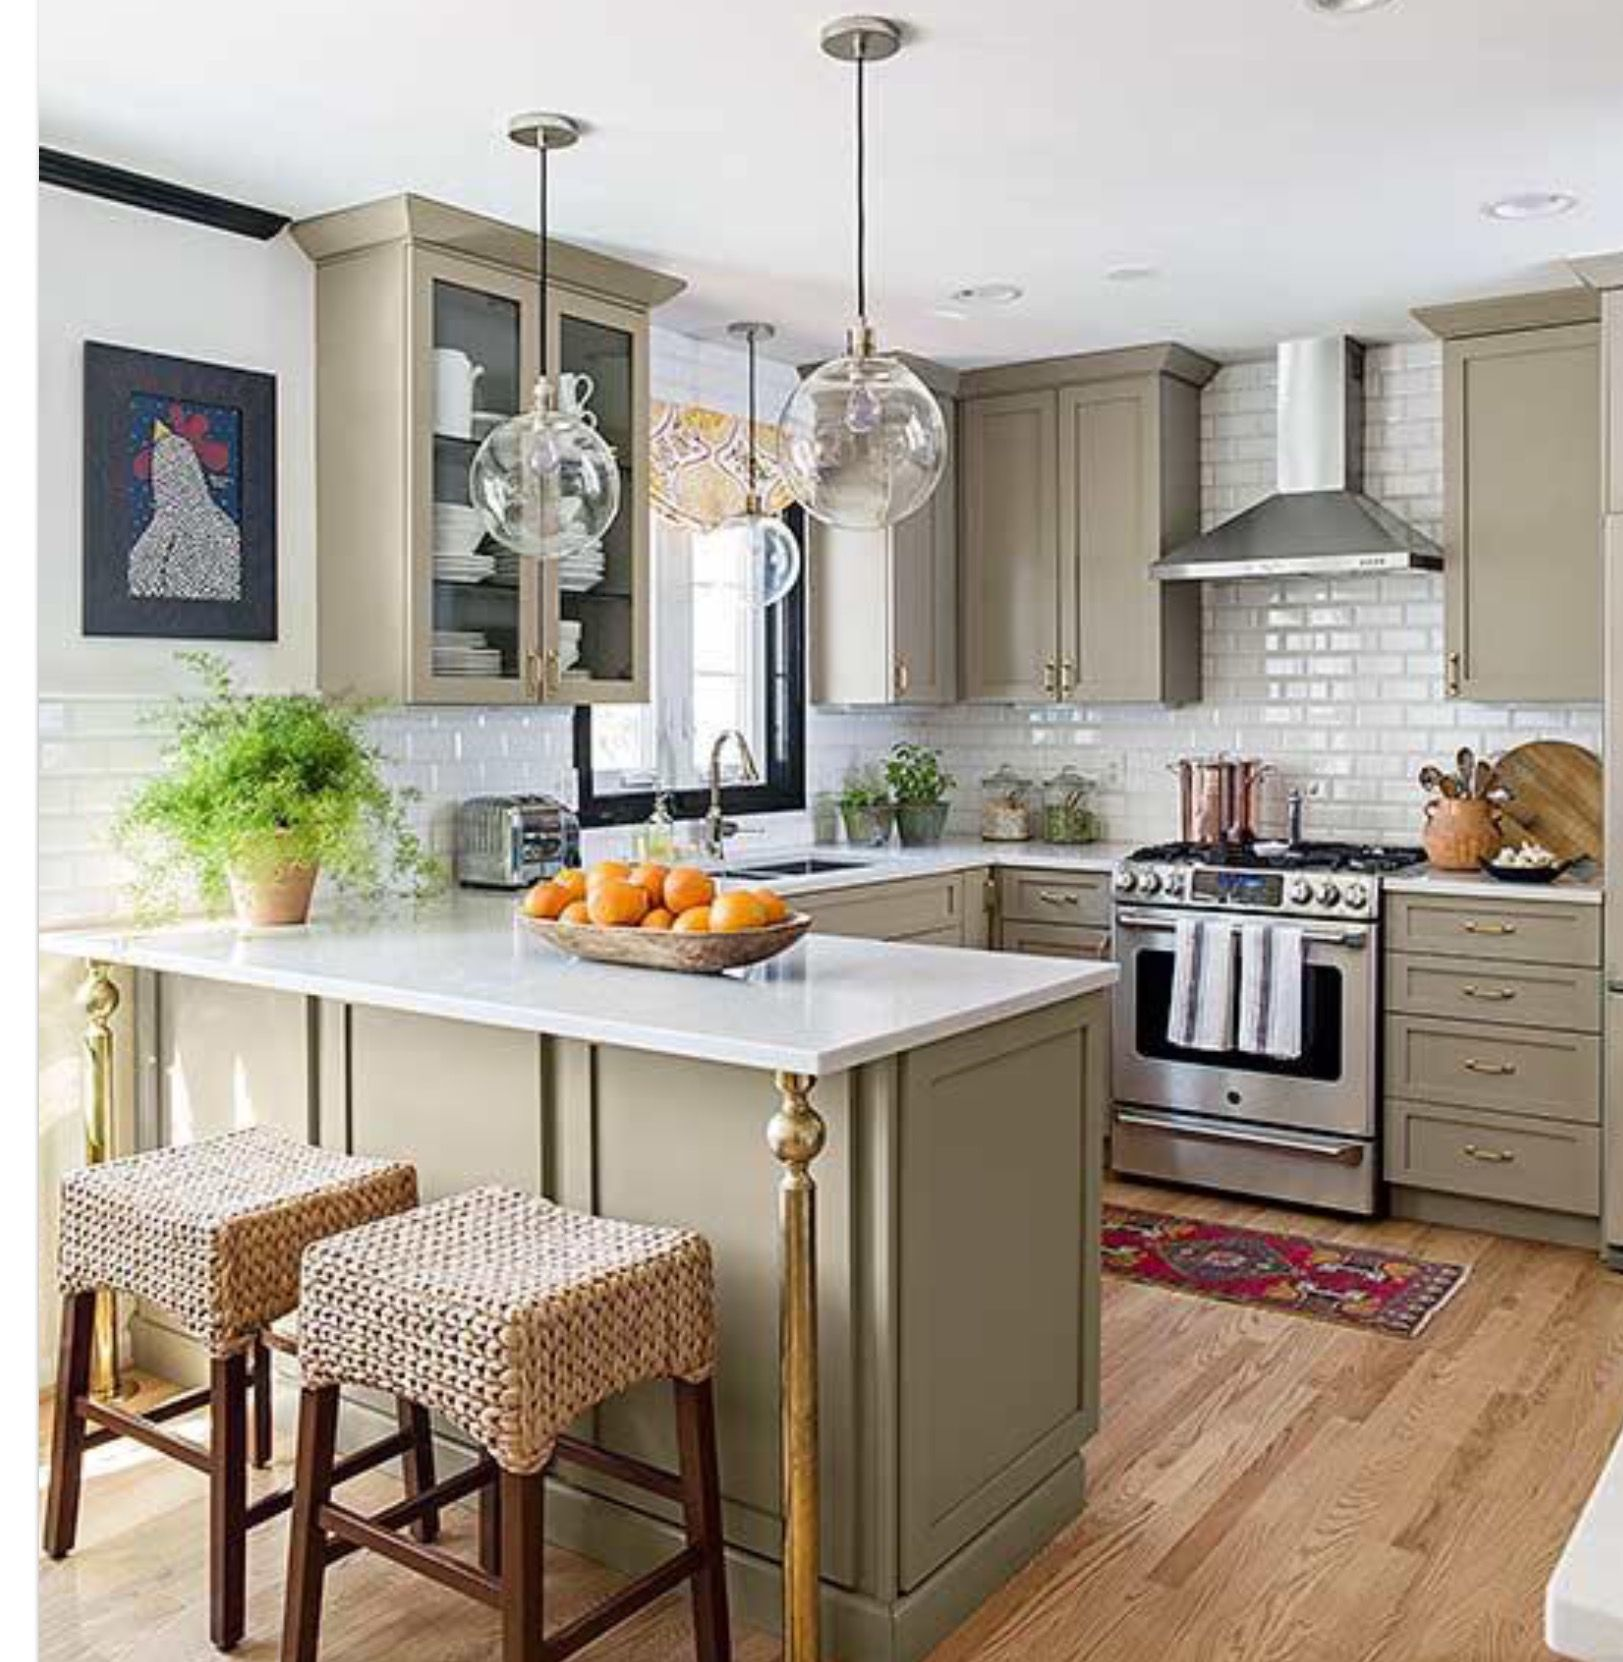 Open Floor Plan Kitchen Renovation In Northern Virginia: Pin By Jennie Ramsey On Home